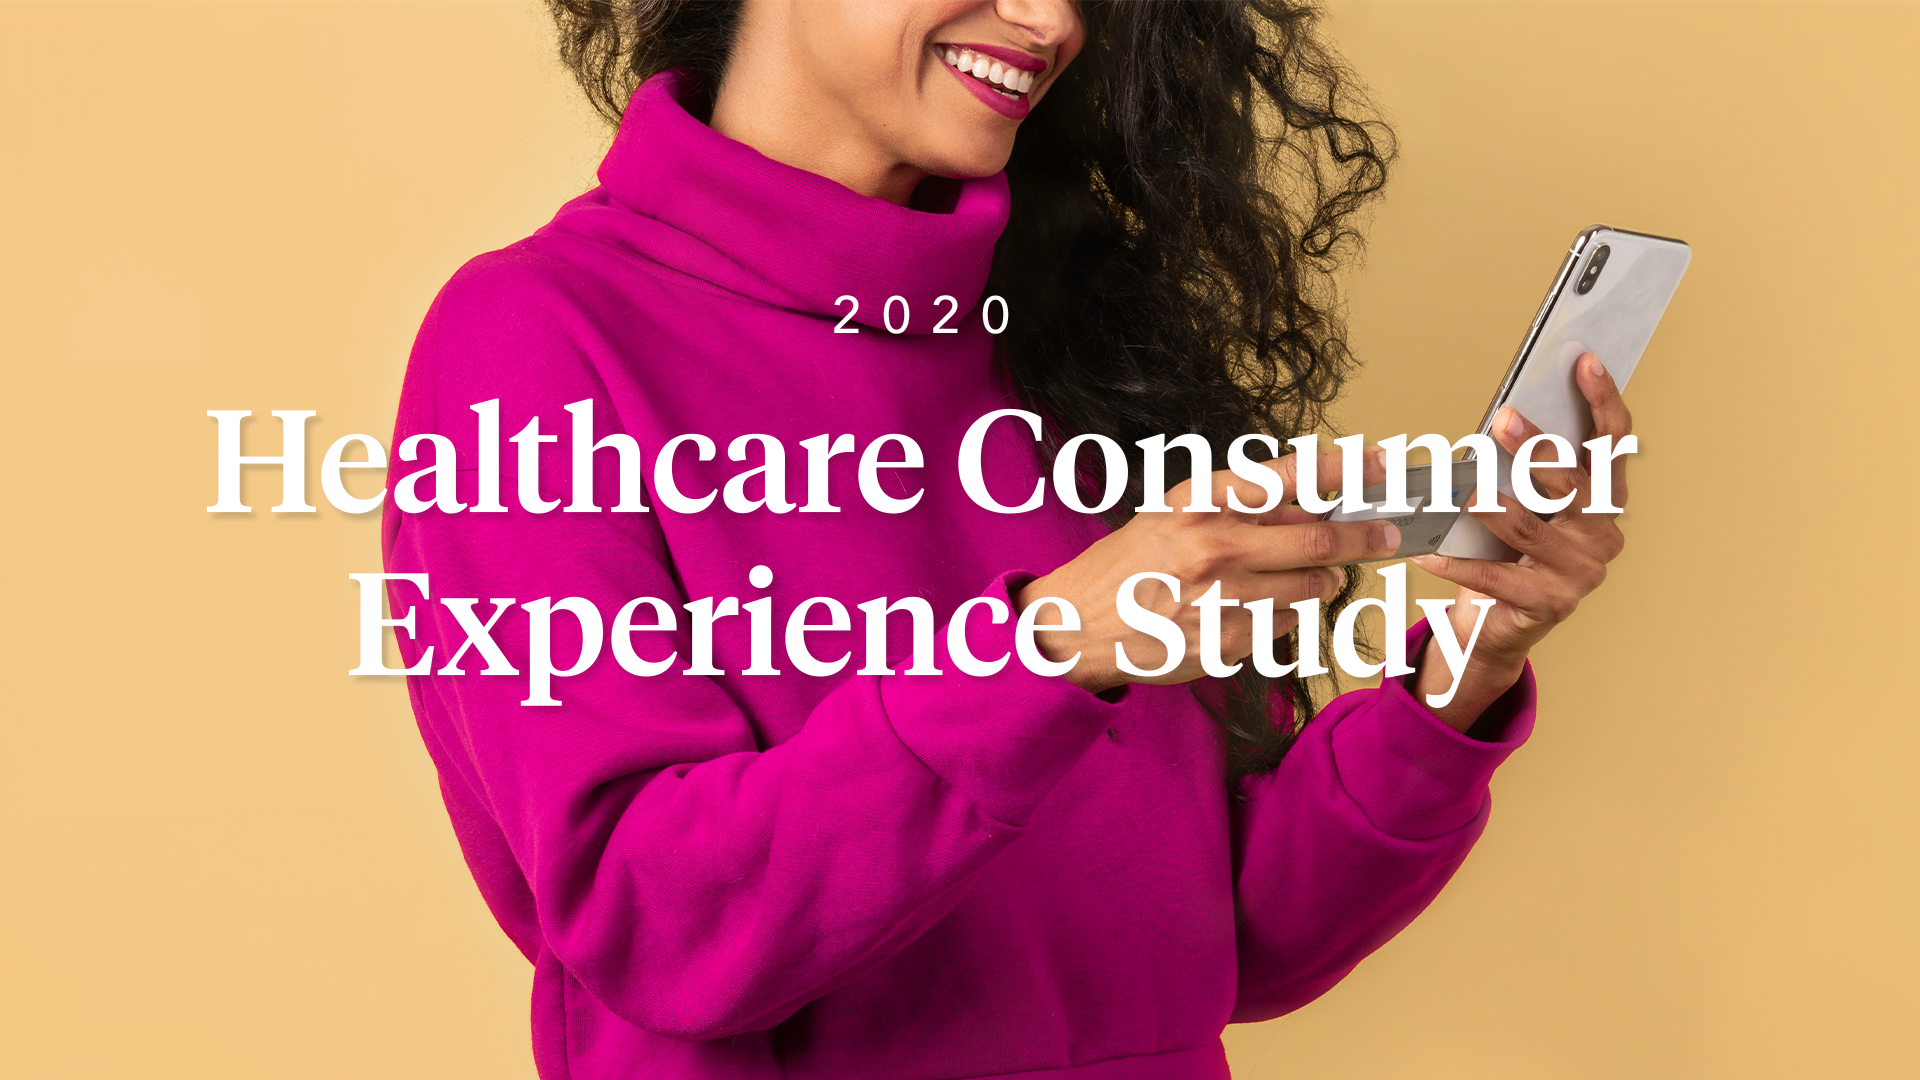 Study Finds 40% Uptick in Consumers Who Have Switched or Stopped Going to a Healthcare Provider Because of a Poor Digital Experience